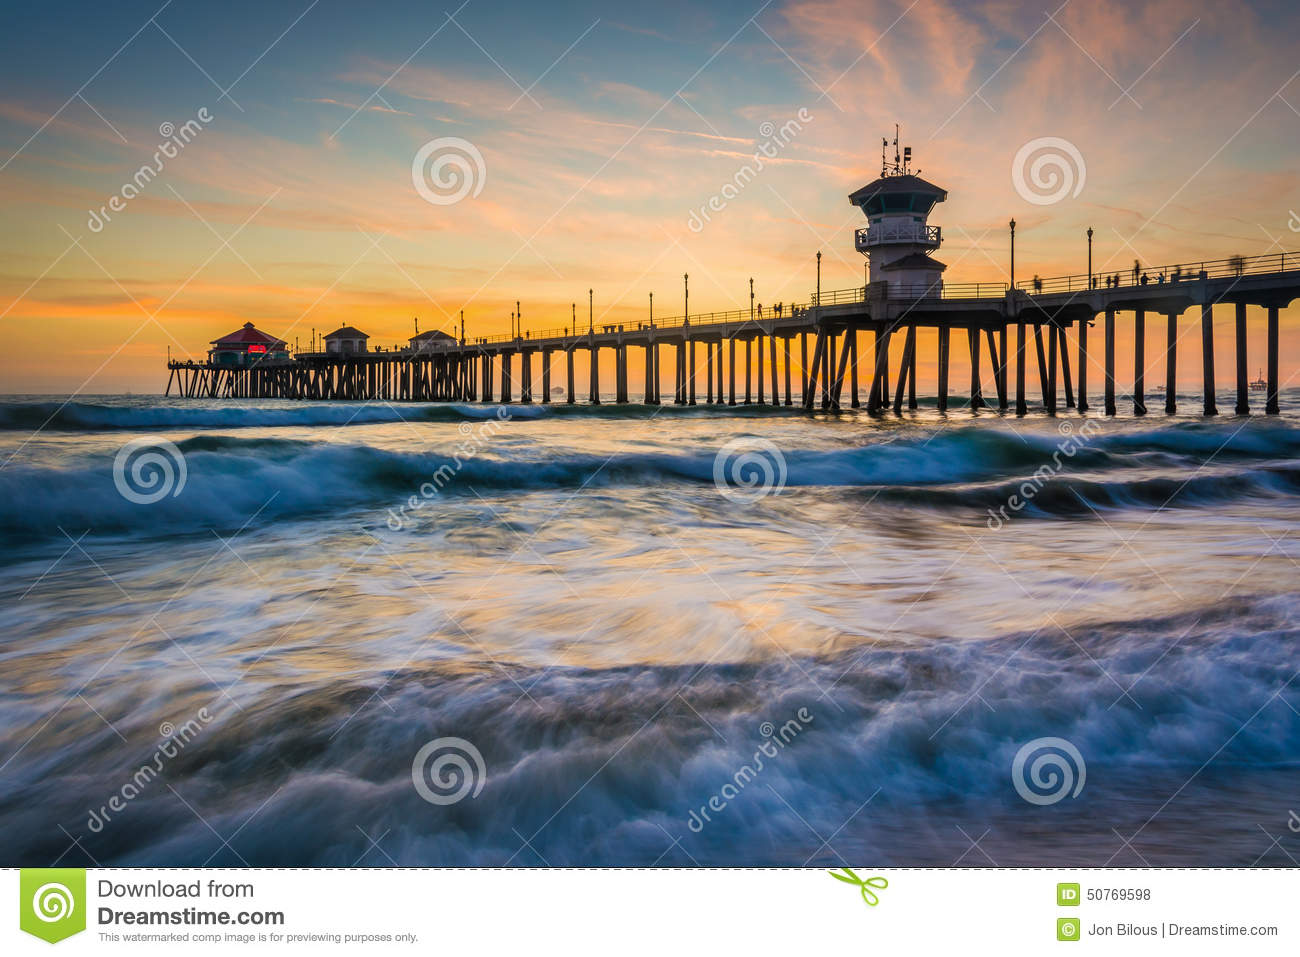 What Is The Time In Huntington Beach California